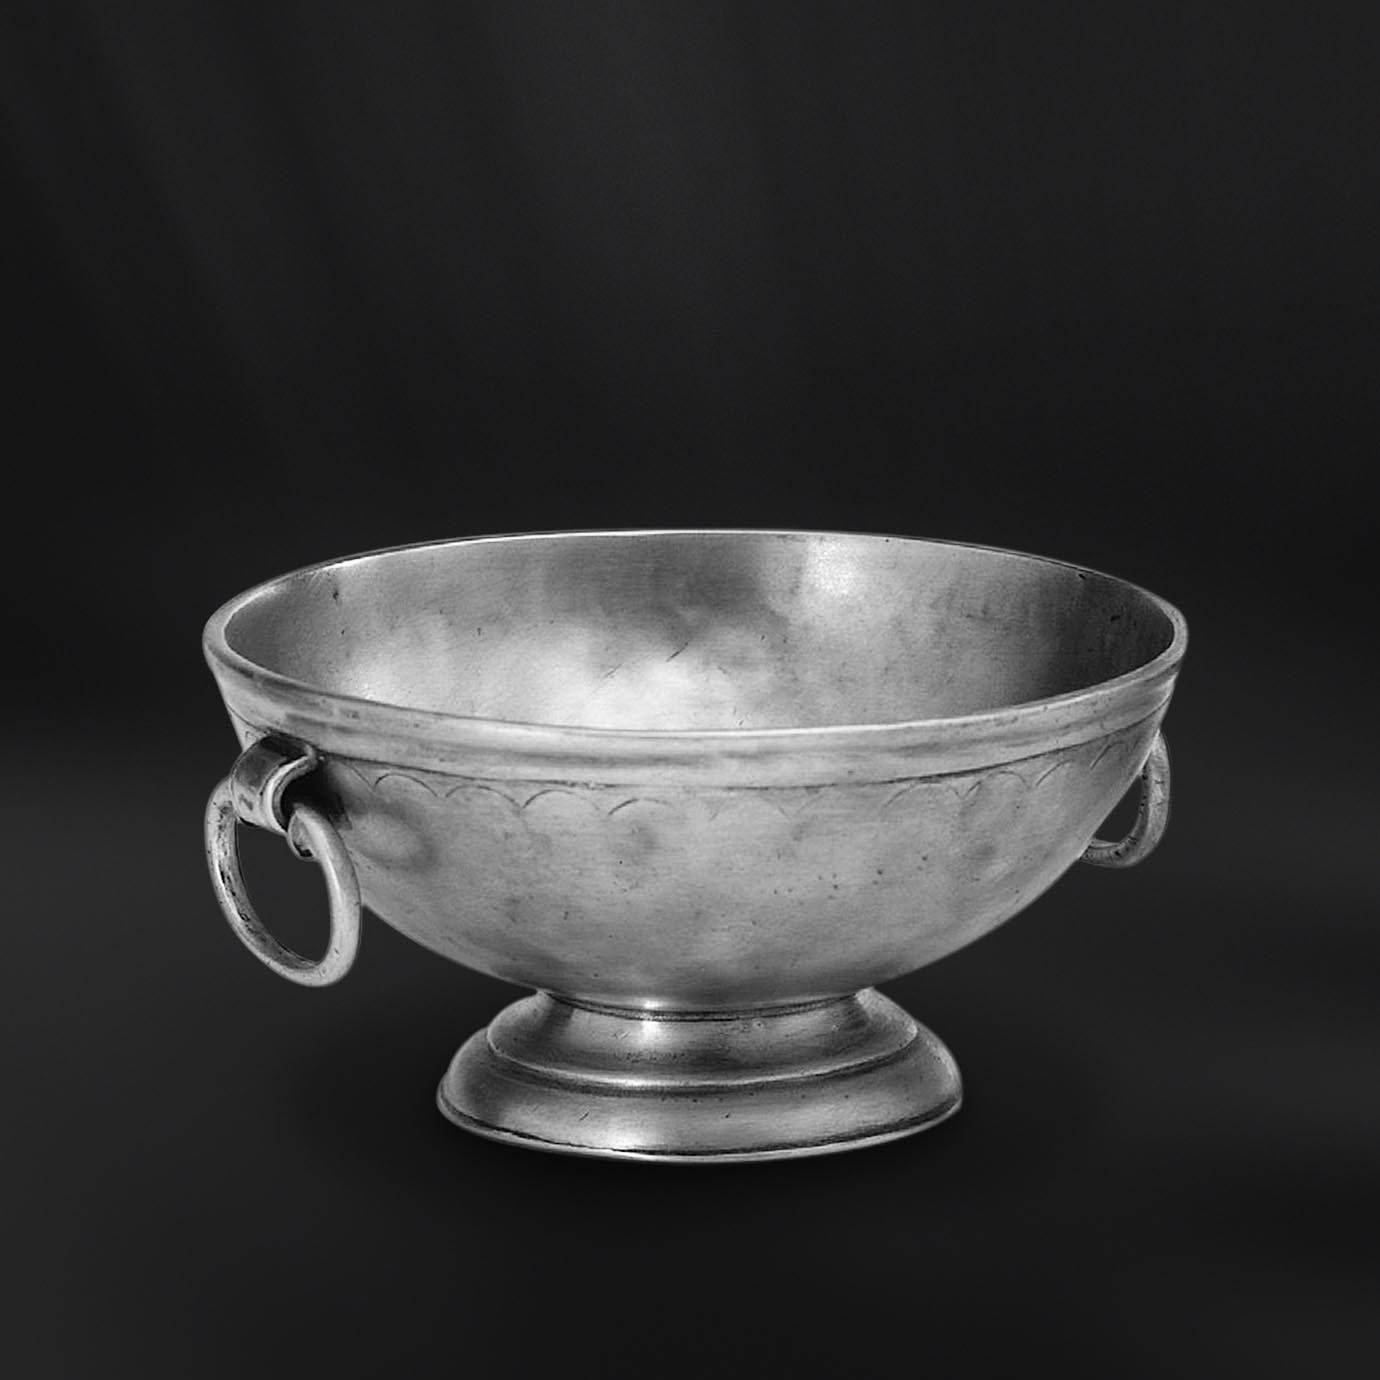 COUPE COUPELLE BOL etain antique